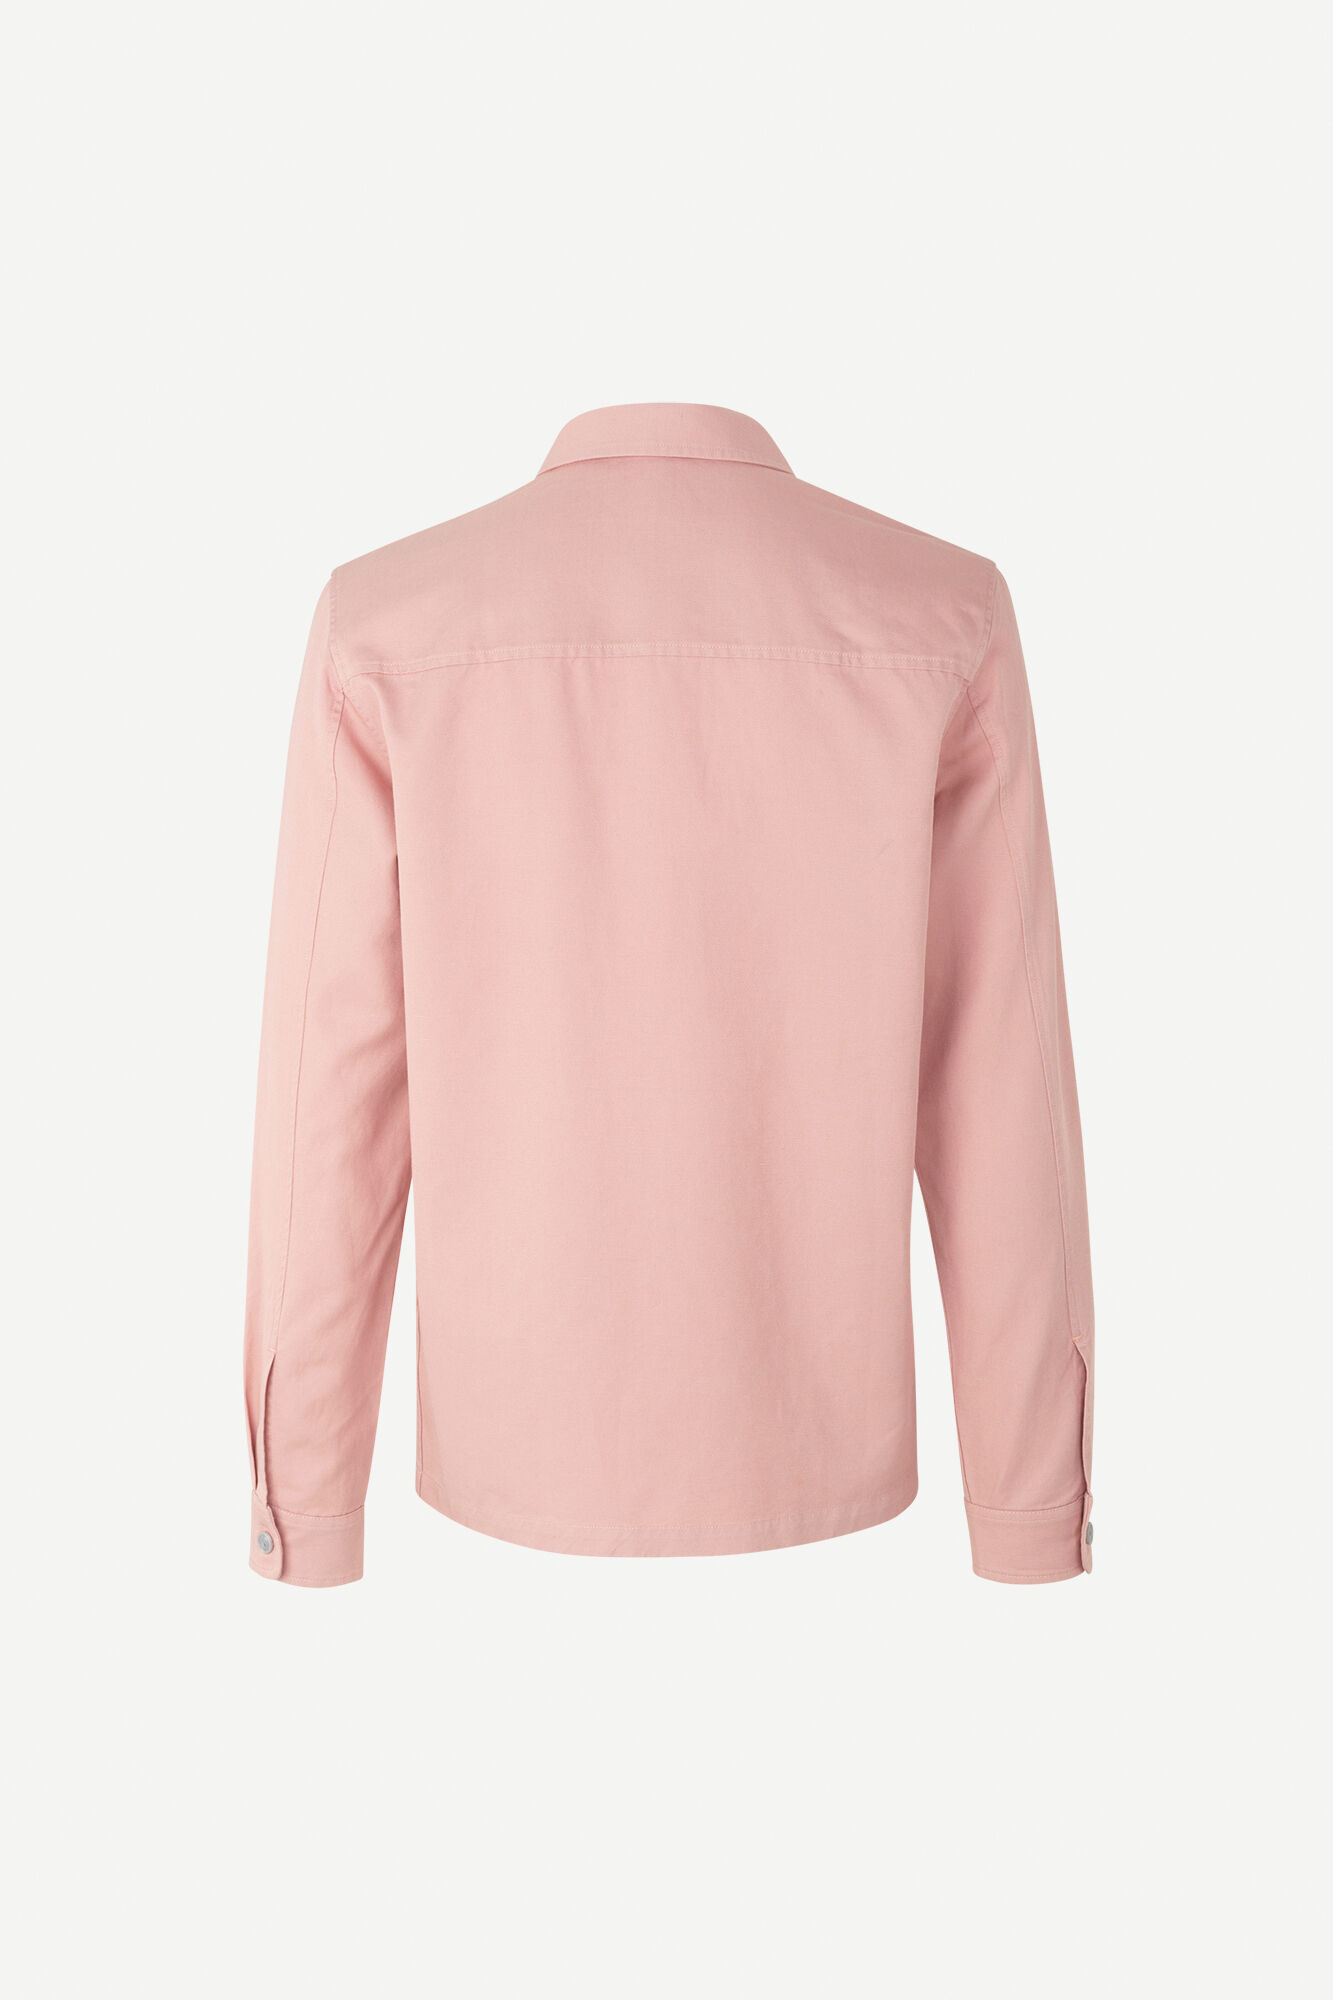 Ruffo JC shirt 11382, MISTY ROSE